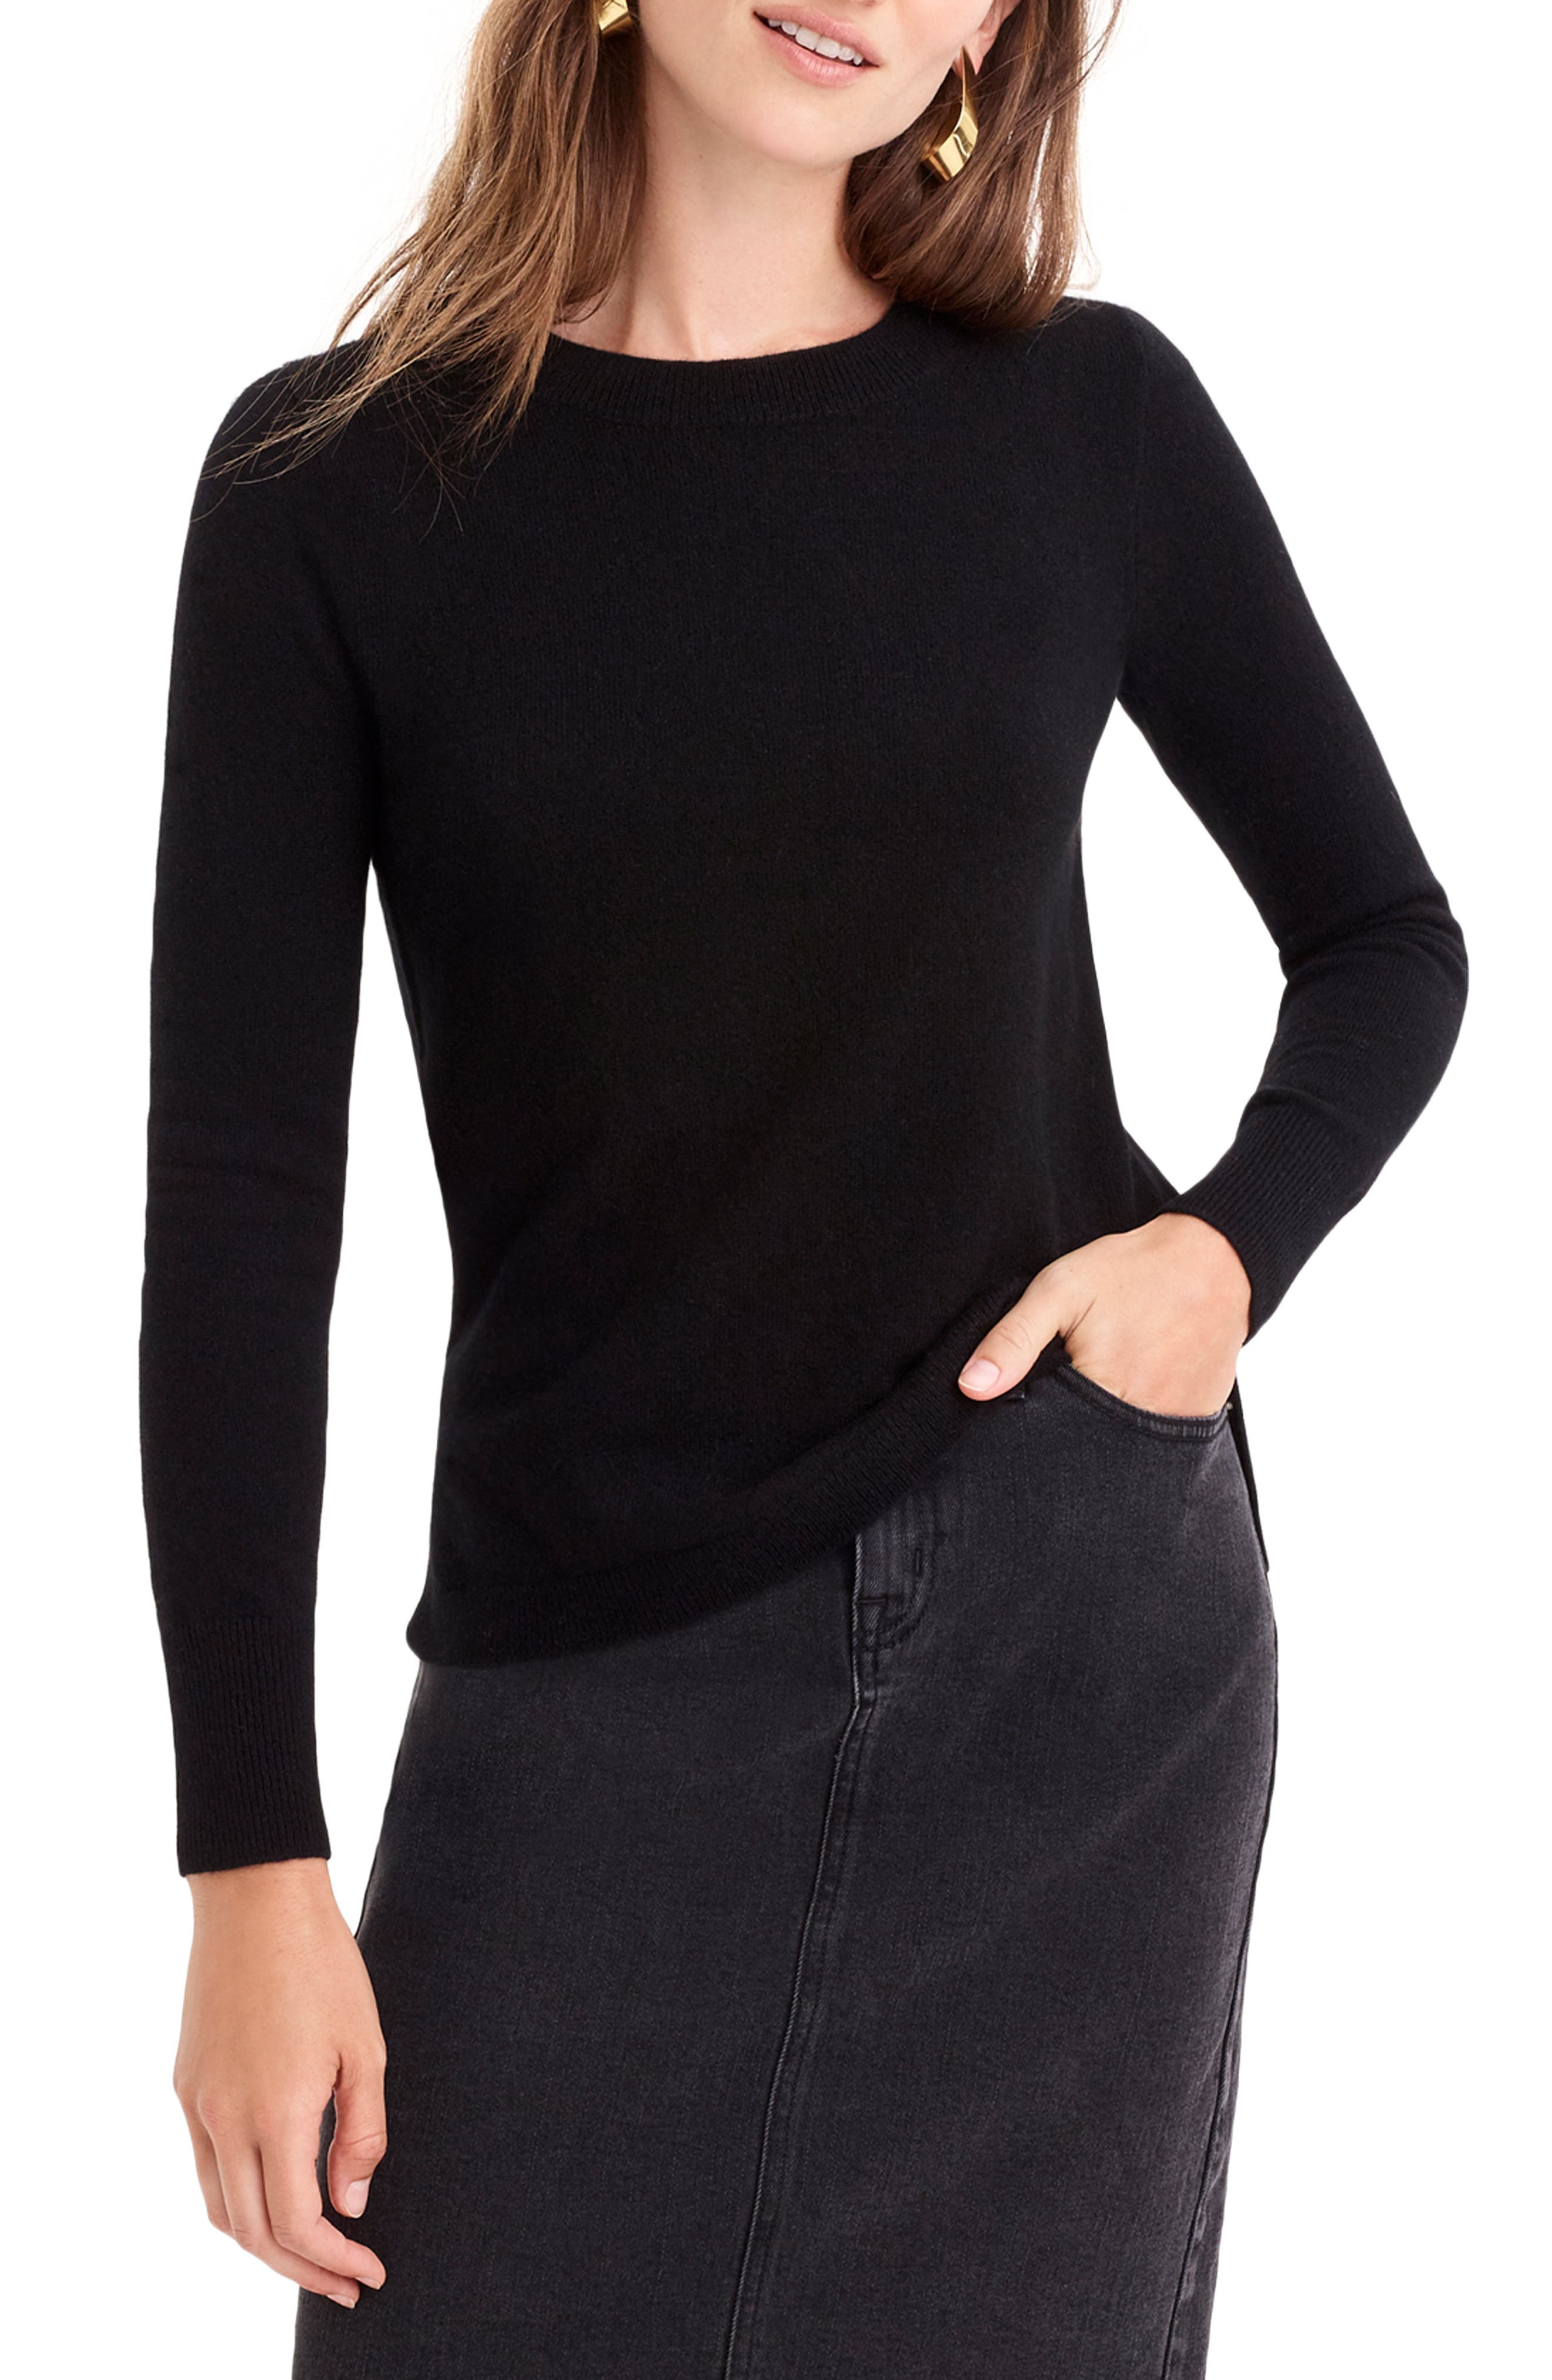 J.CREW,                             Crewneck Cashmere Sweater,                             Main thumbnail 1, color,                             BLACK